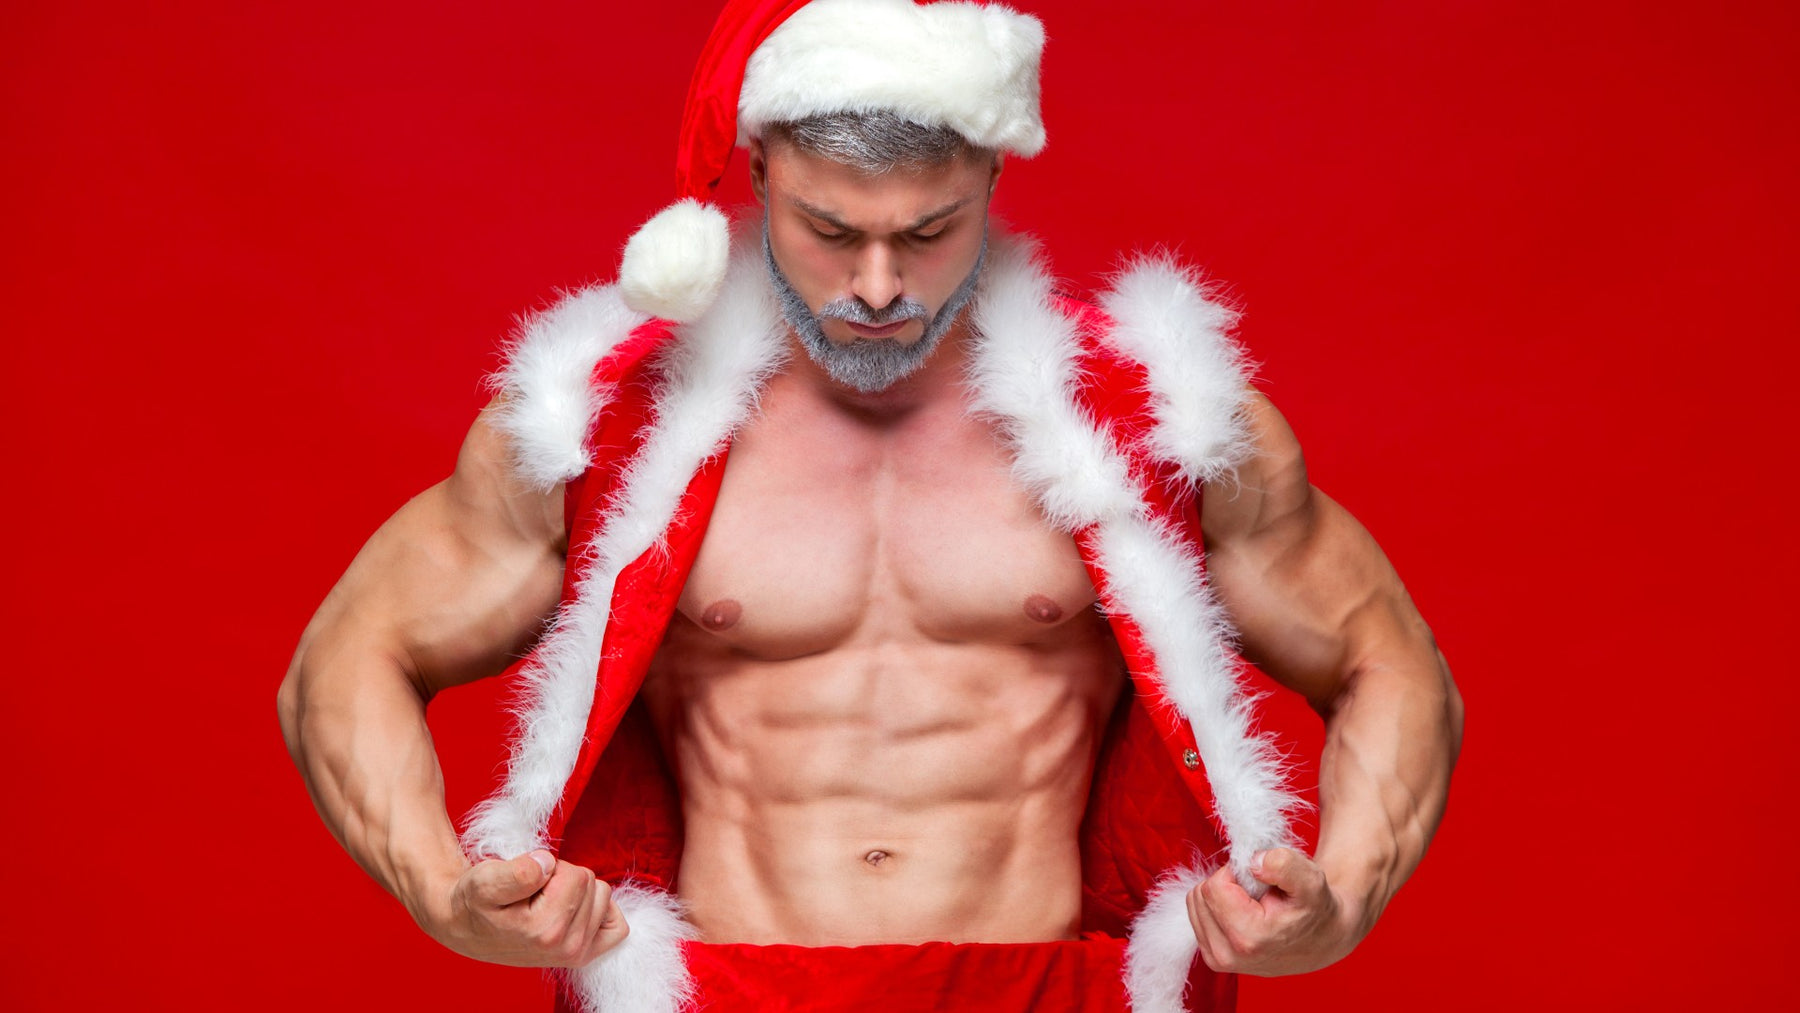 The 12 Gains of Liftmas: Gifts for Bodybuilders